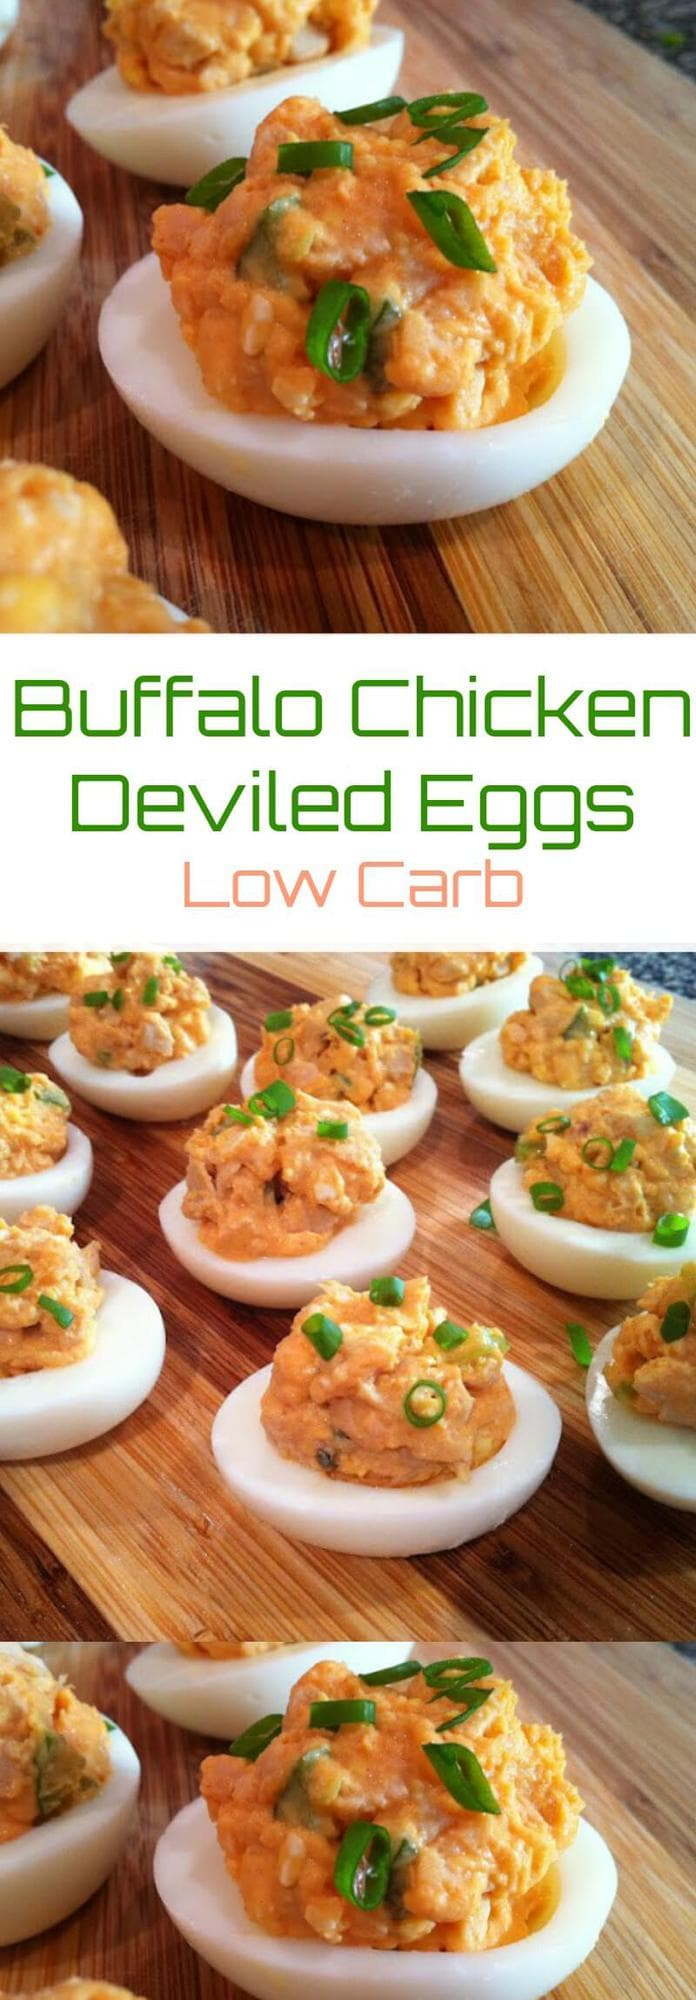 Keto Buffalo Chicken Deviled Eggs | Peace Love and Low Carb